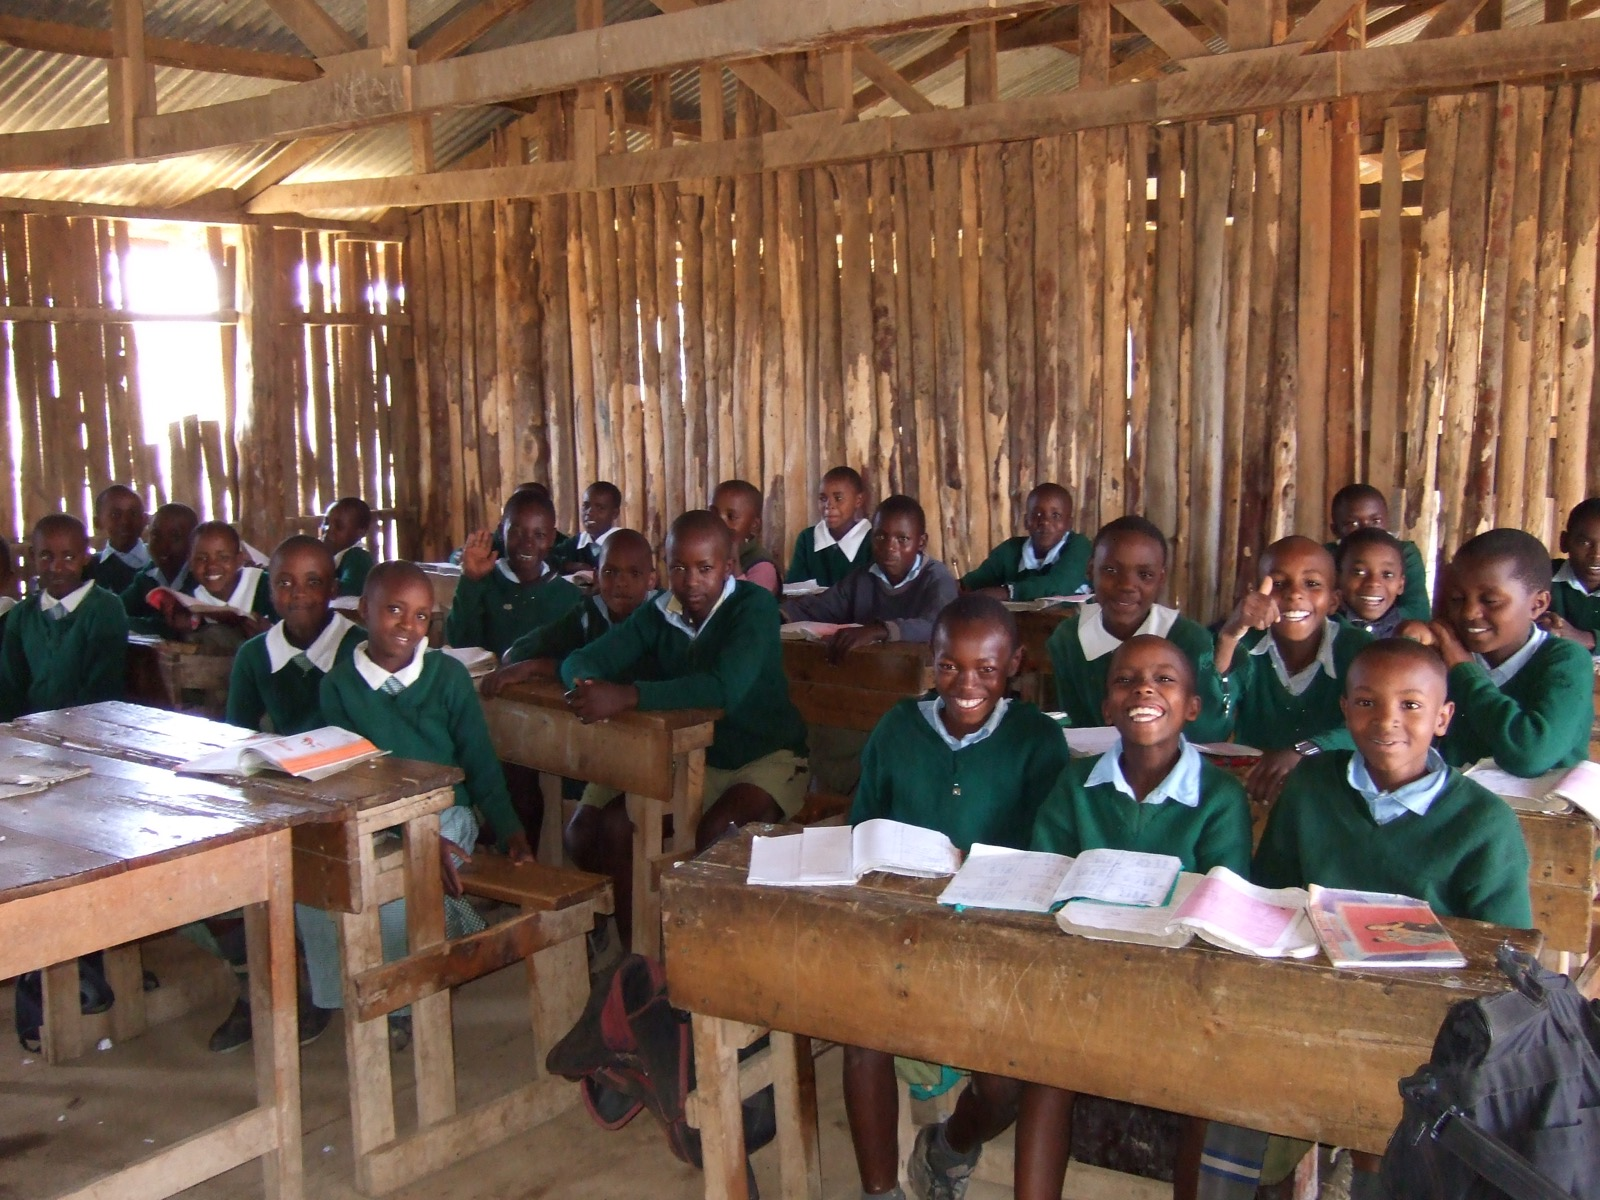 Smiling primary school children sit together at desks in their classroom, which used to be a horse stable.